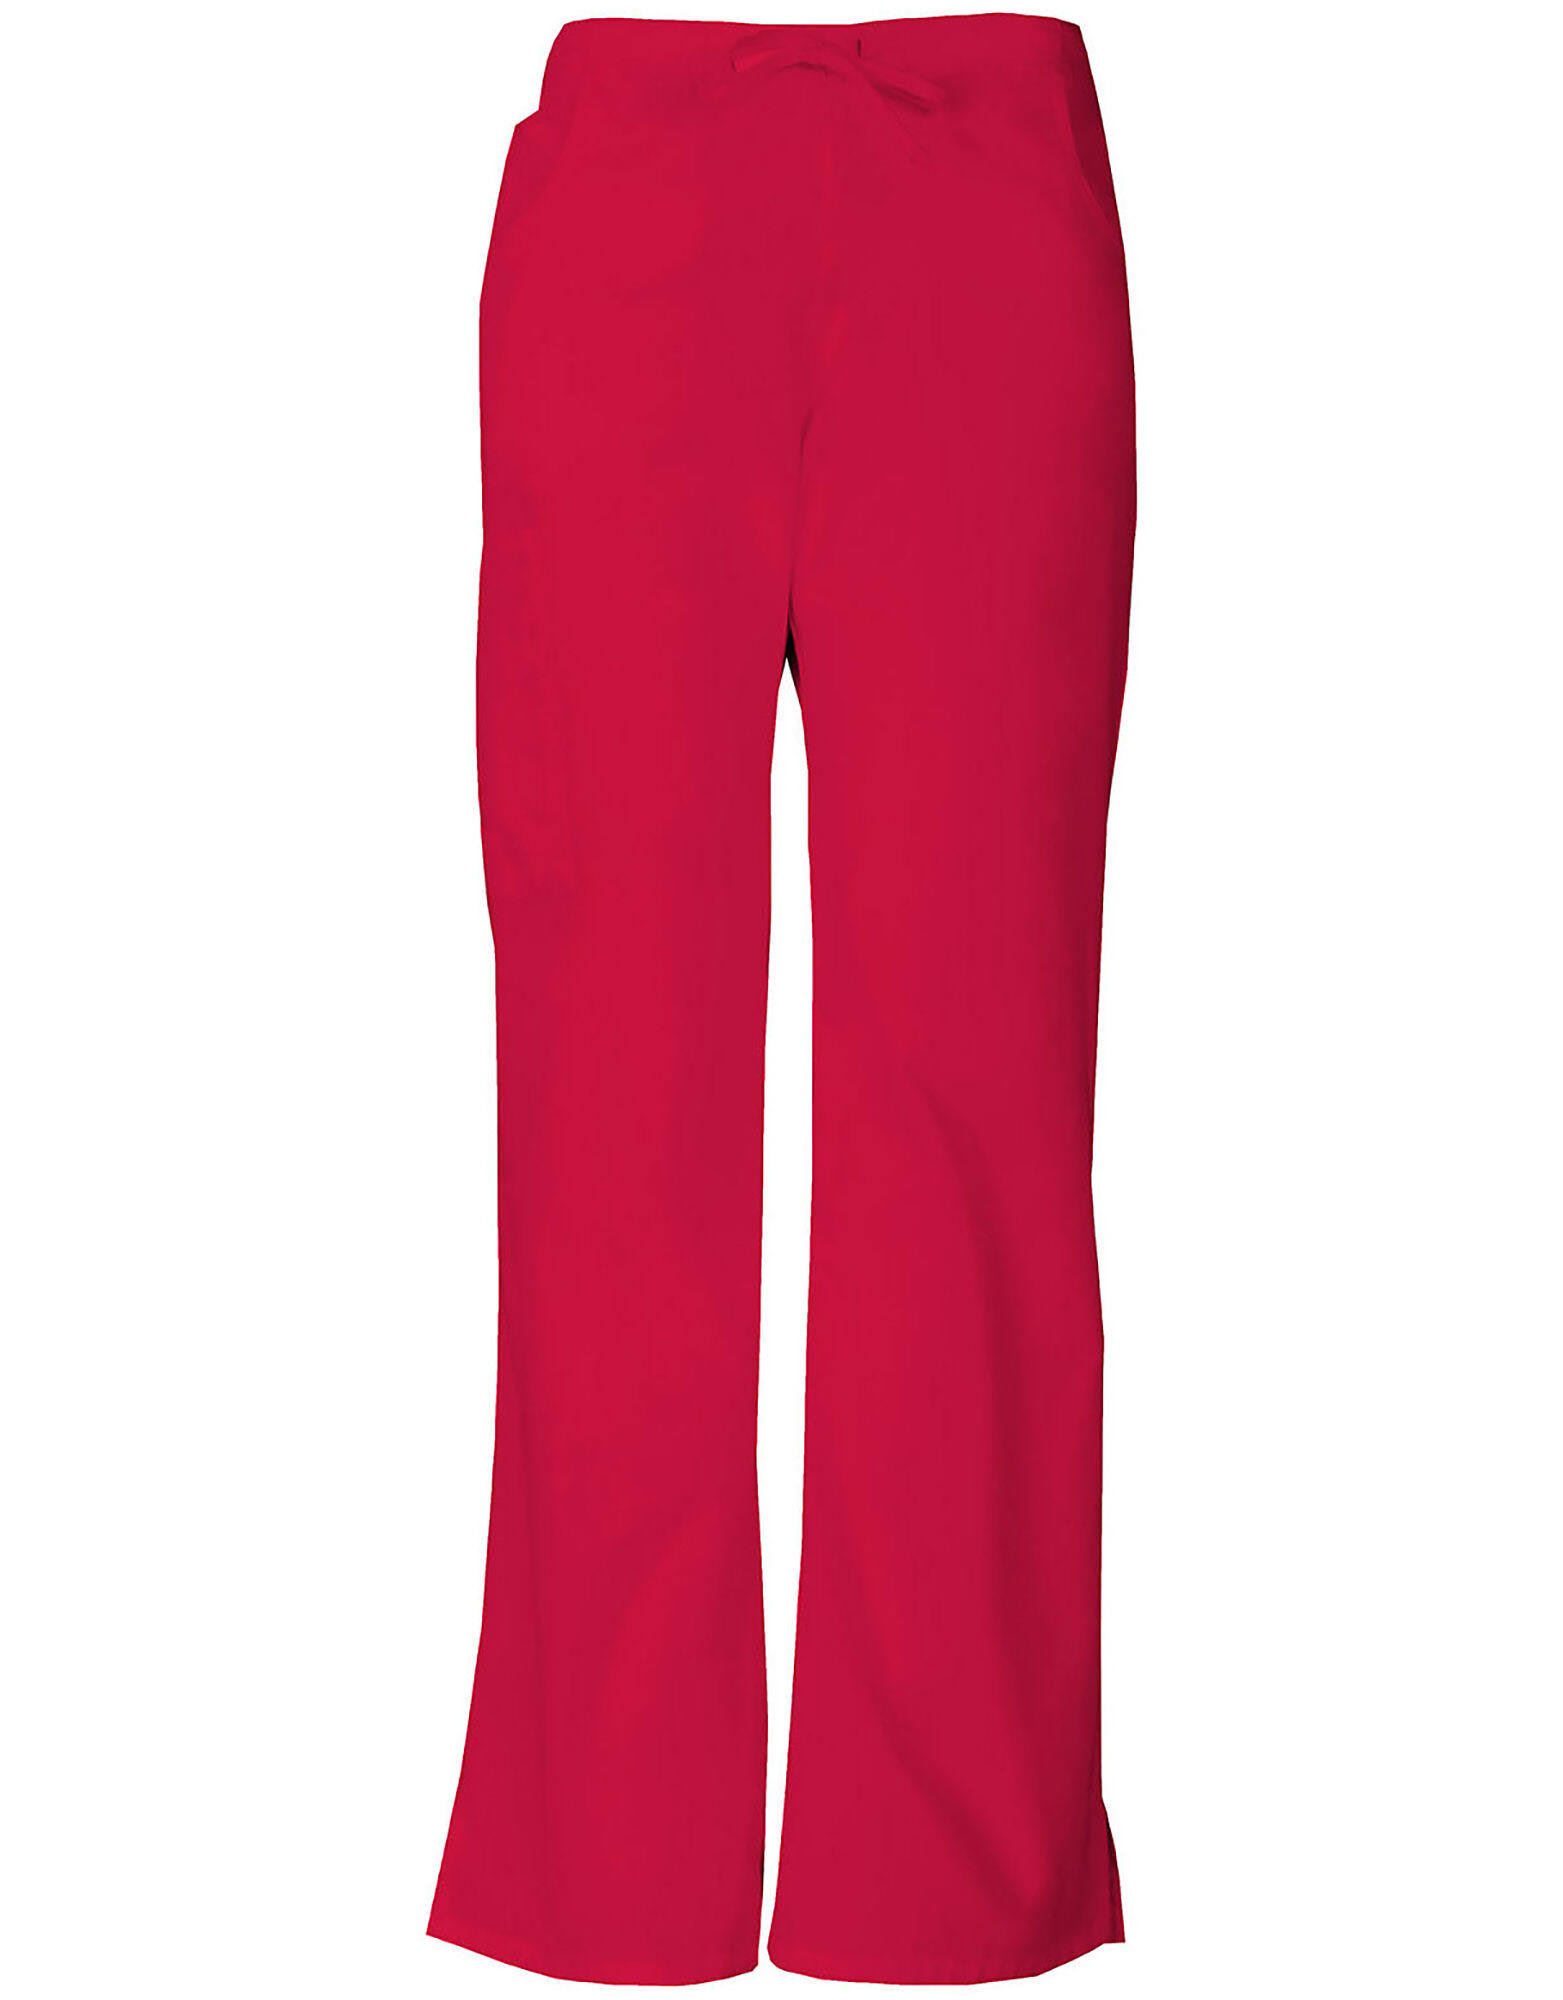 Dickies Womens EDS Signature Midrise Drawstring Cargo Pant - Red, X-Small